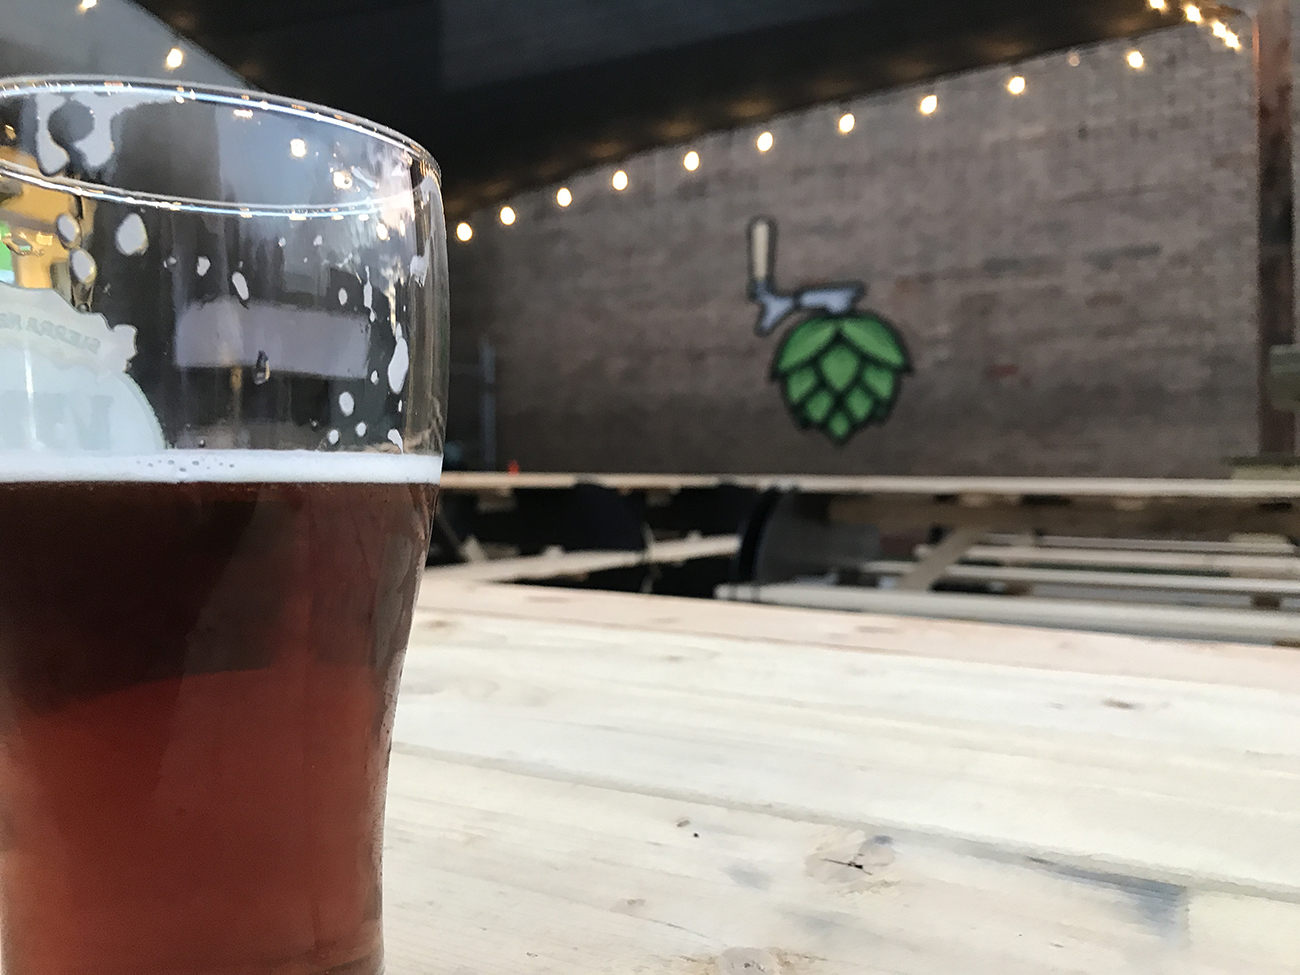 Self-serve wine and craft beer bar Hoppin' opens in South End tomorrow